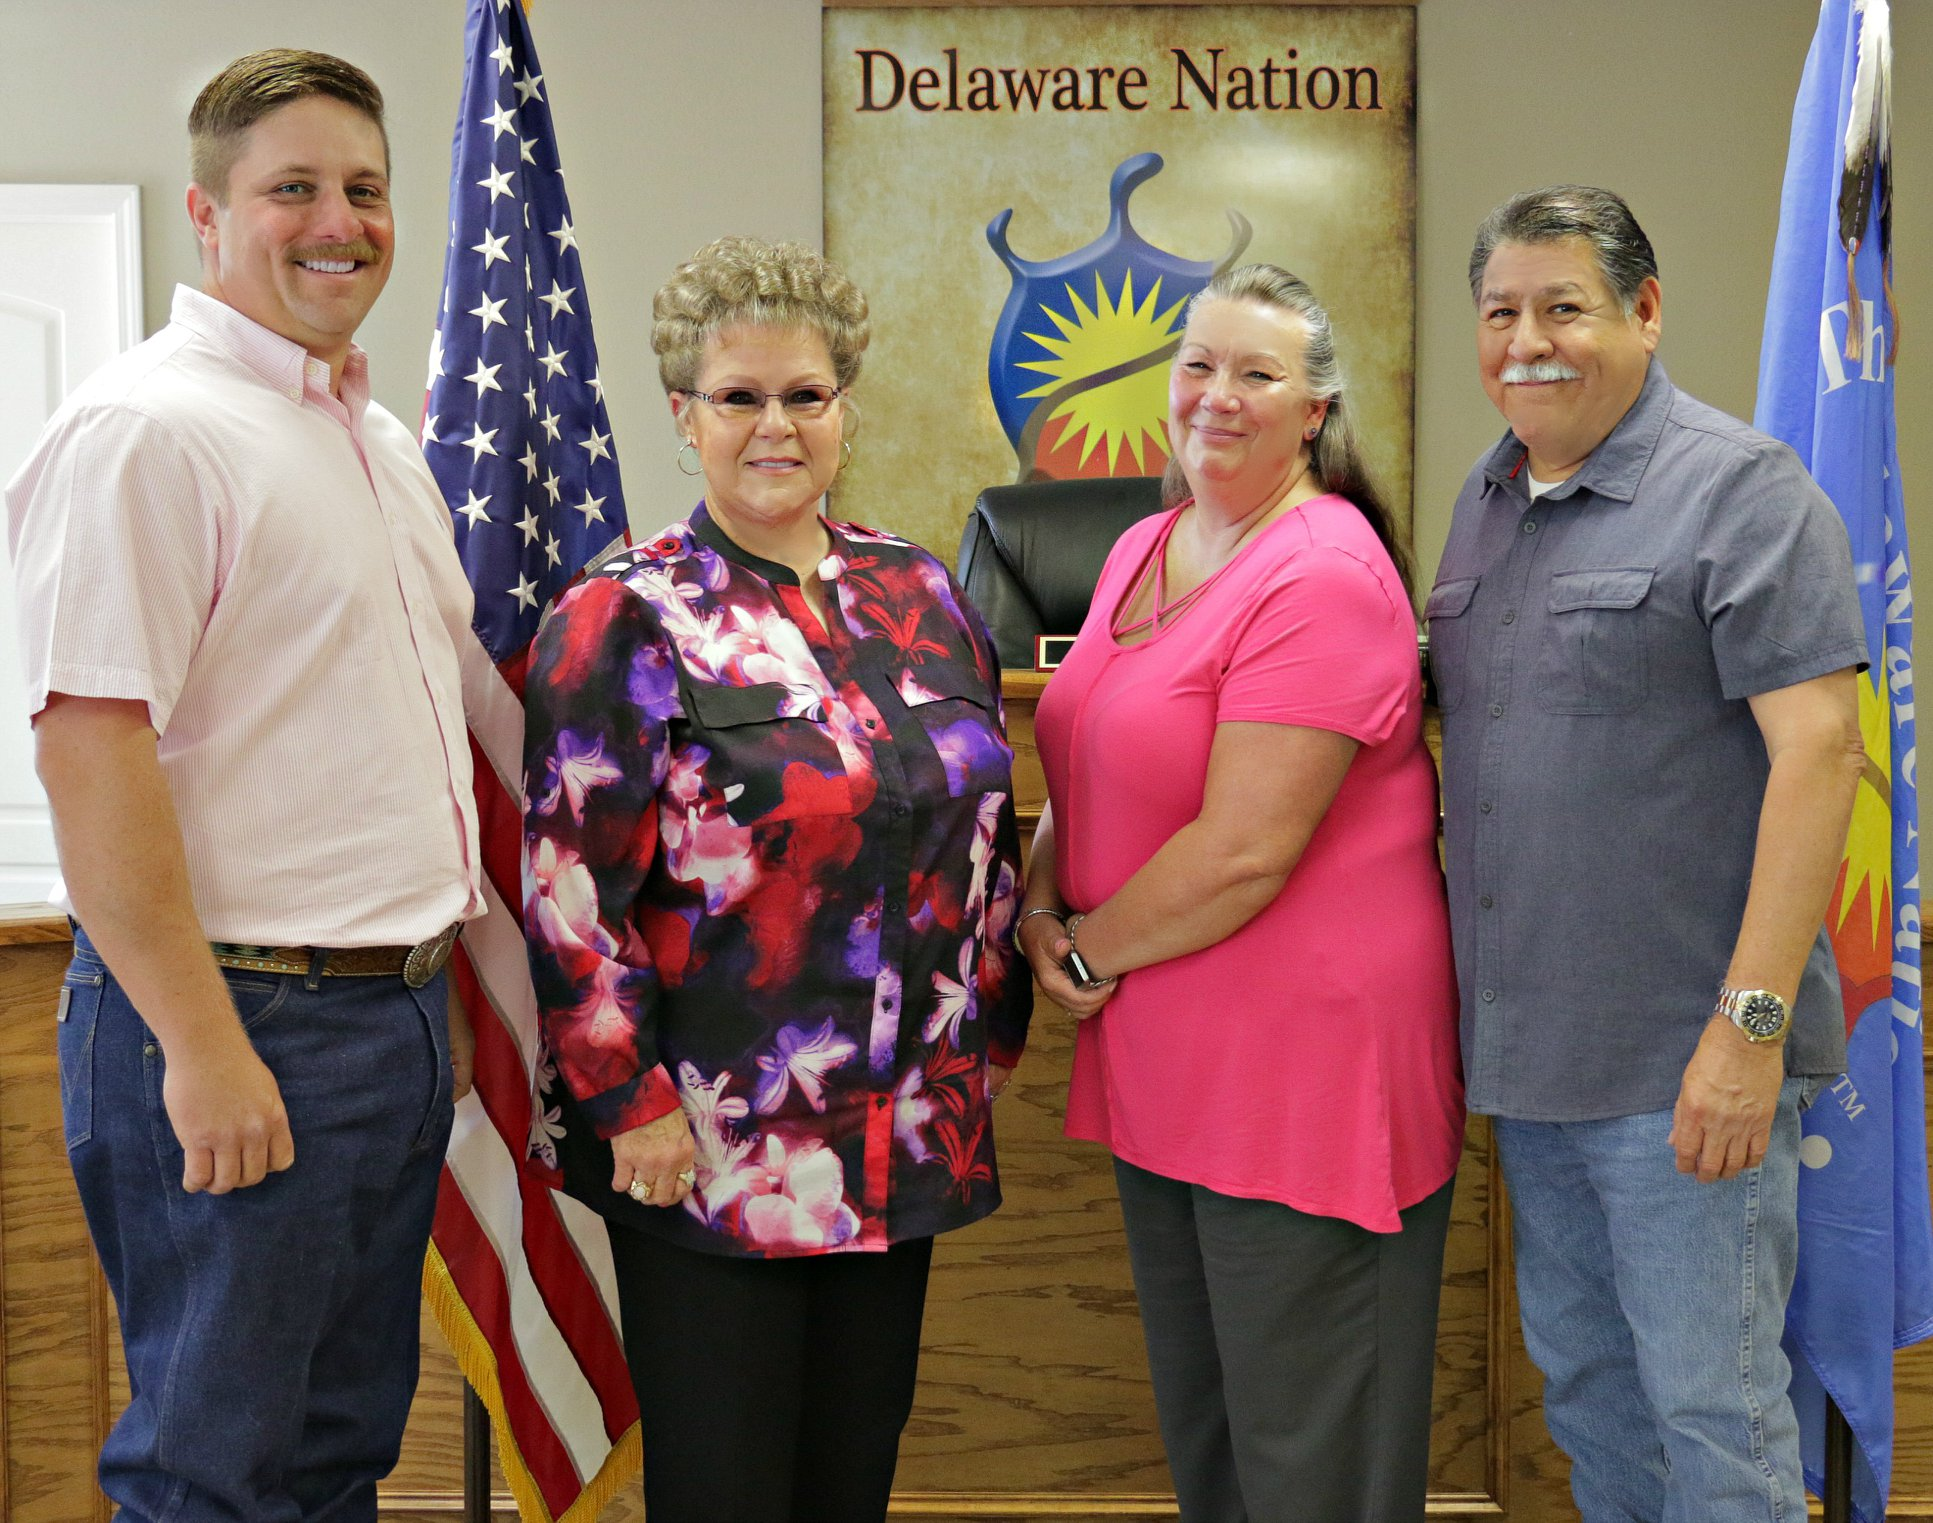 Delaware Nation Swearing In Ceremony